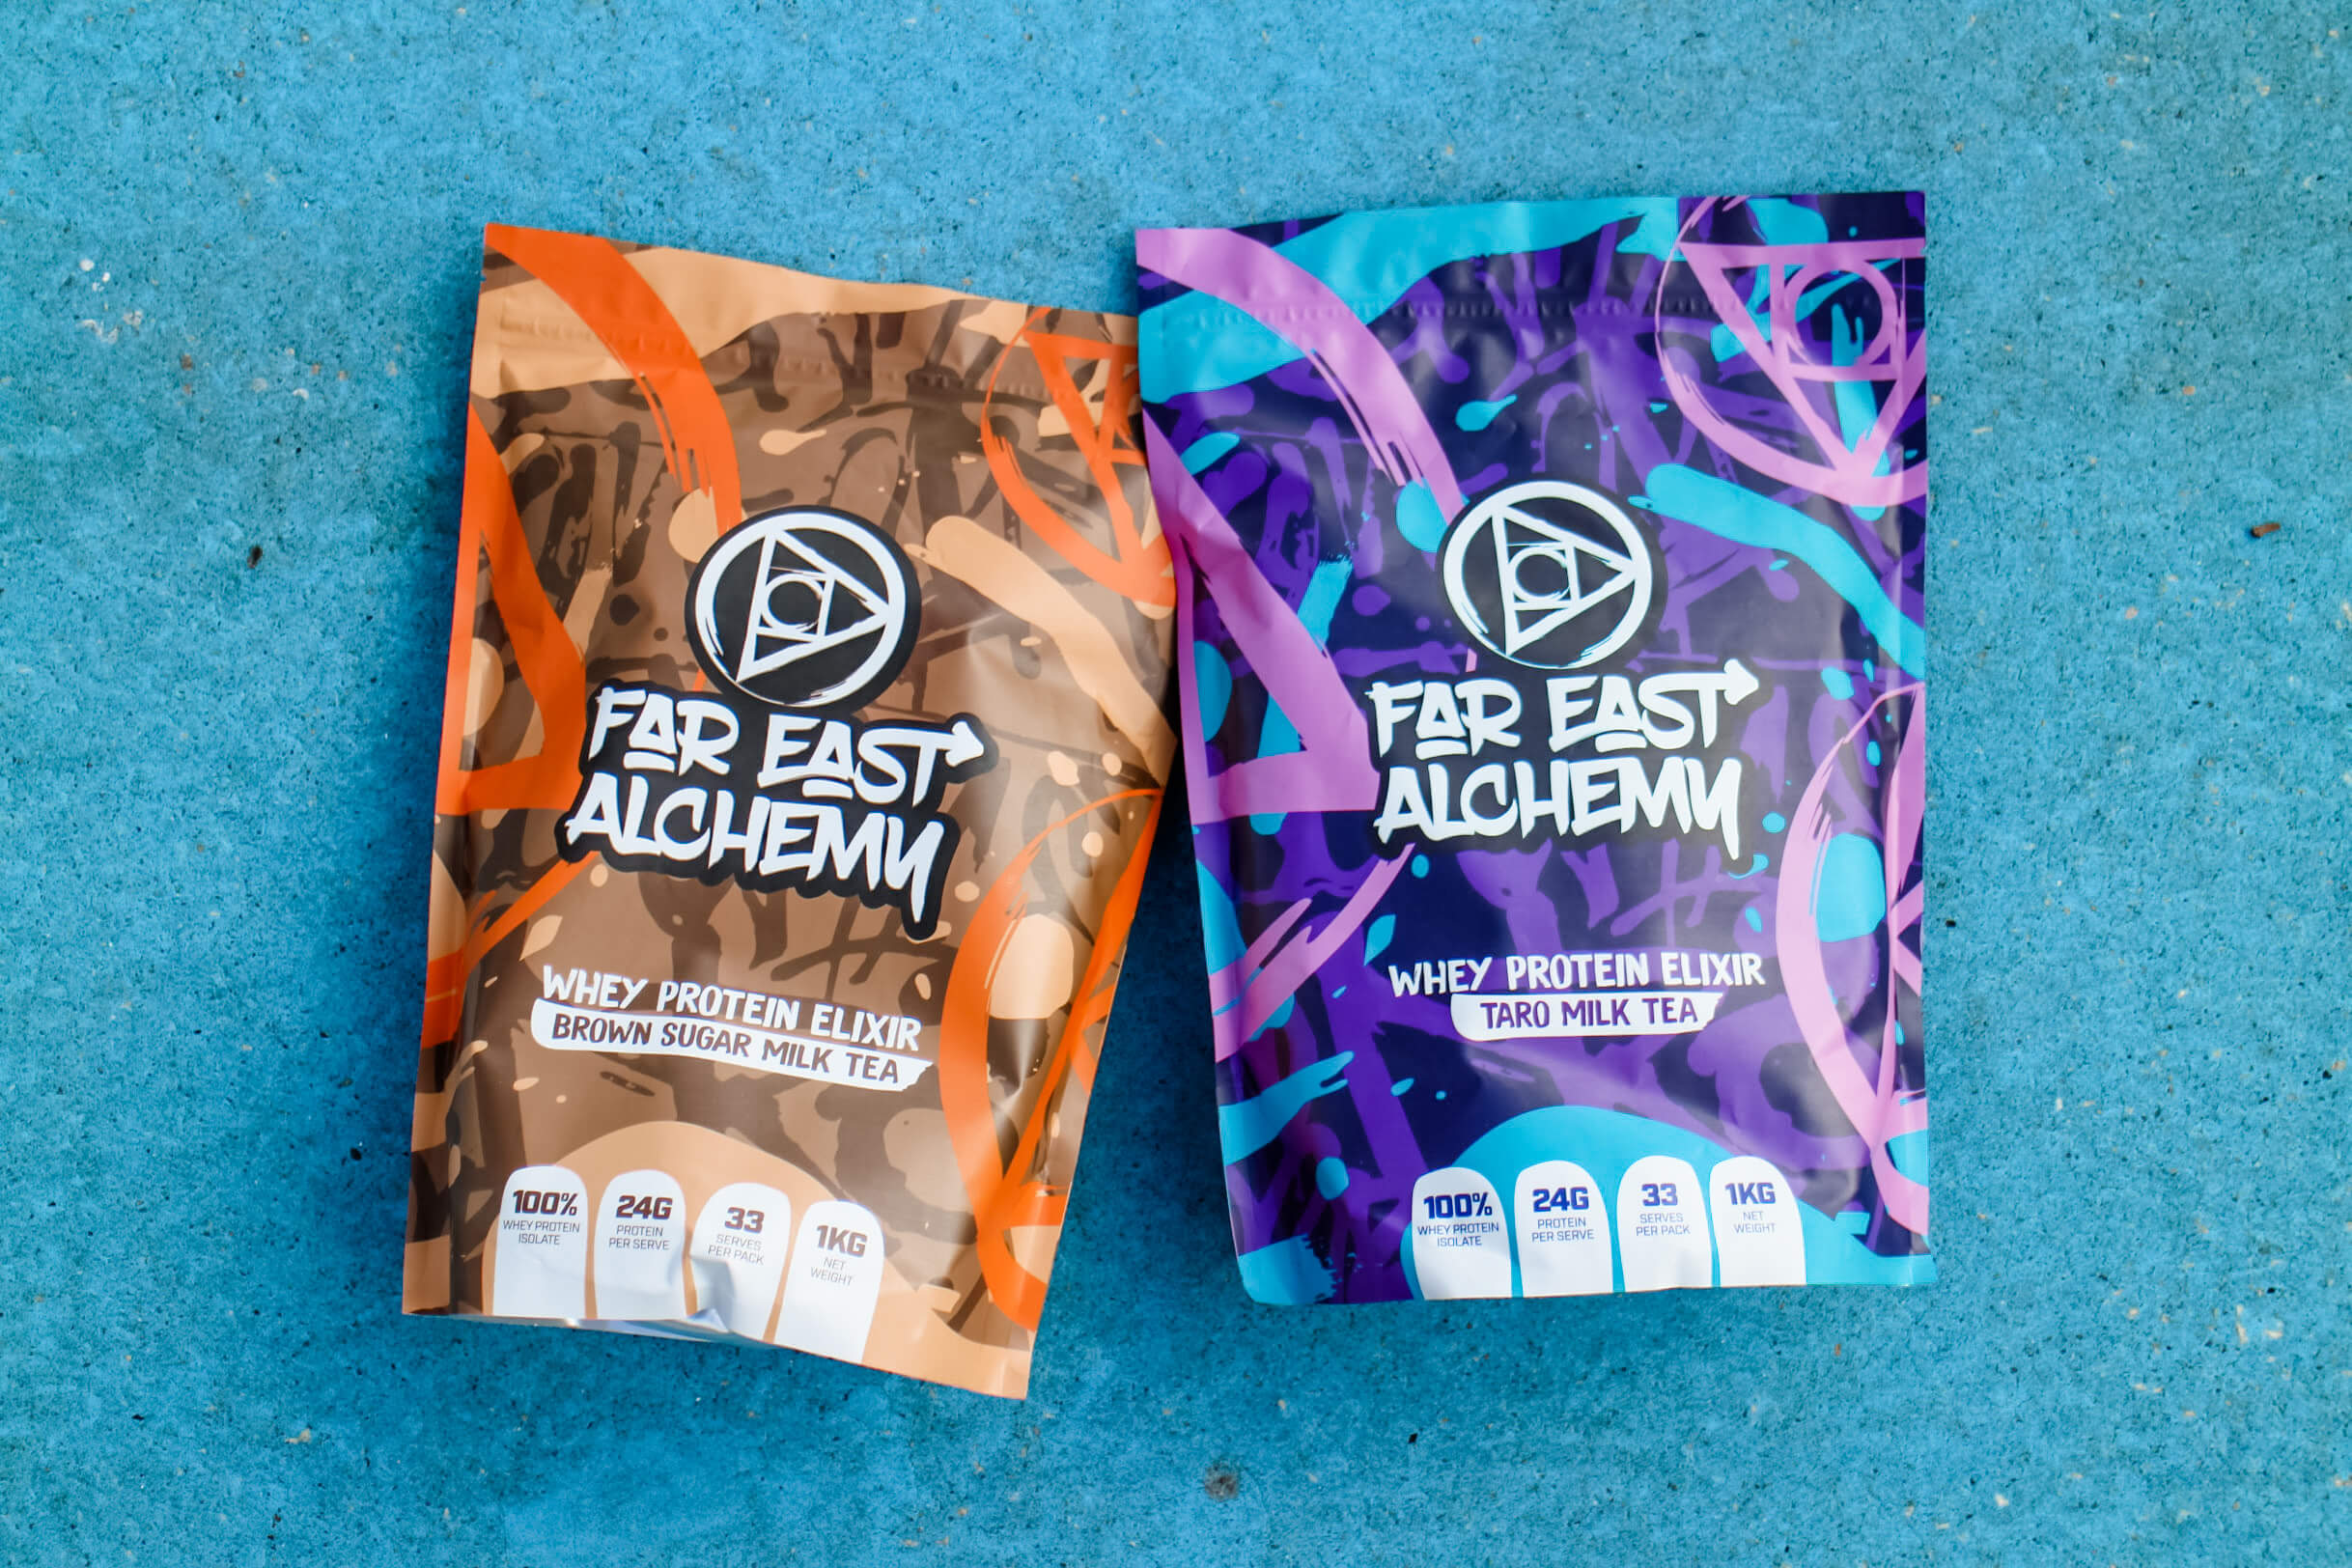 Whey protein elixir, far east alchemy